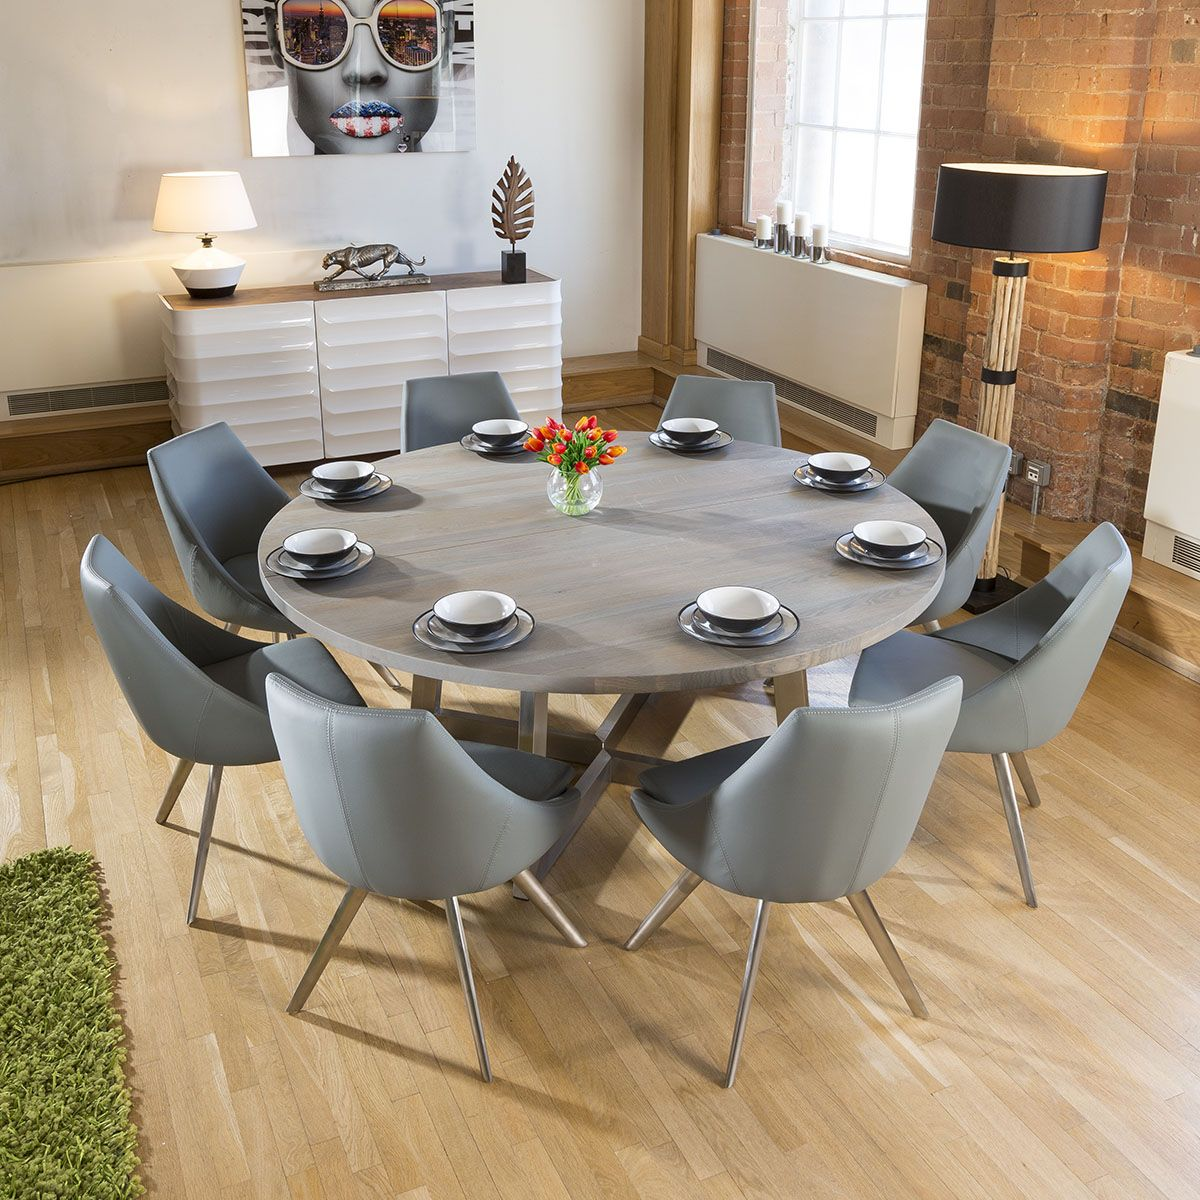 Large Round 1 8 Grey Oak Dining Table 8 Medium Grey Modern Pu Chairs In 2020 Oval Table Dining Round Dining Room Large Dining Room